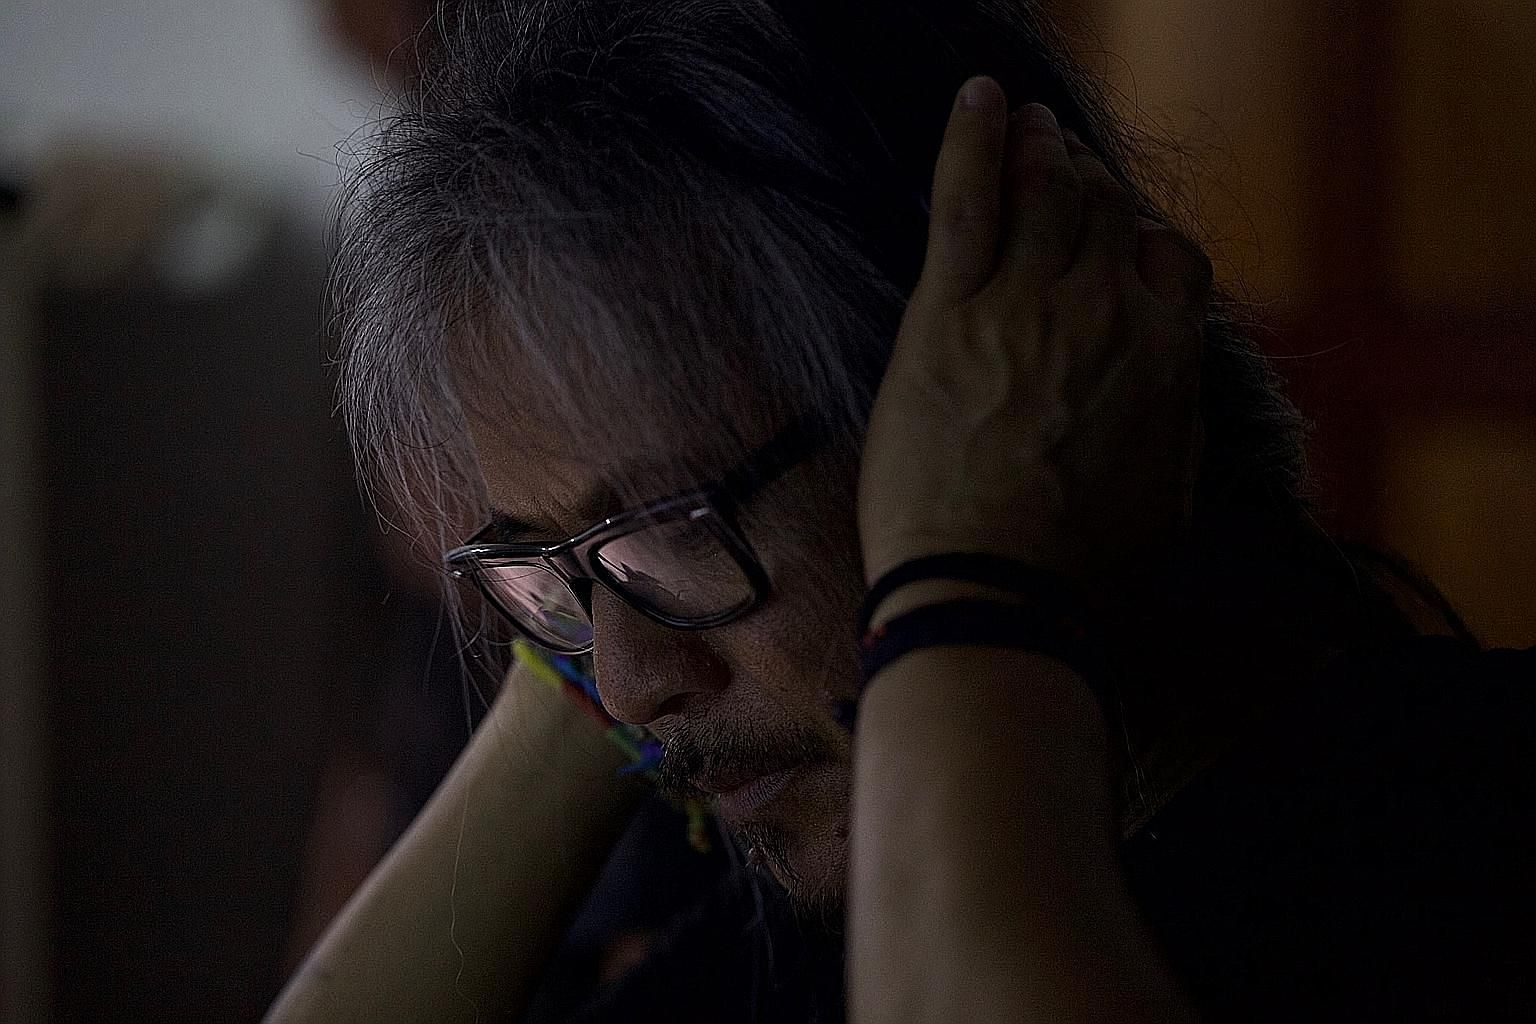 Filipino film-maker Lav Diaz will film a new work on domestic workers in Singapore.